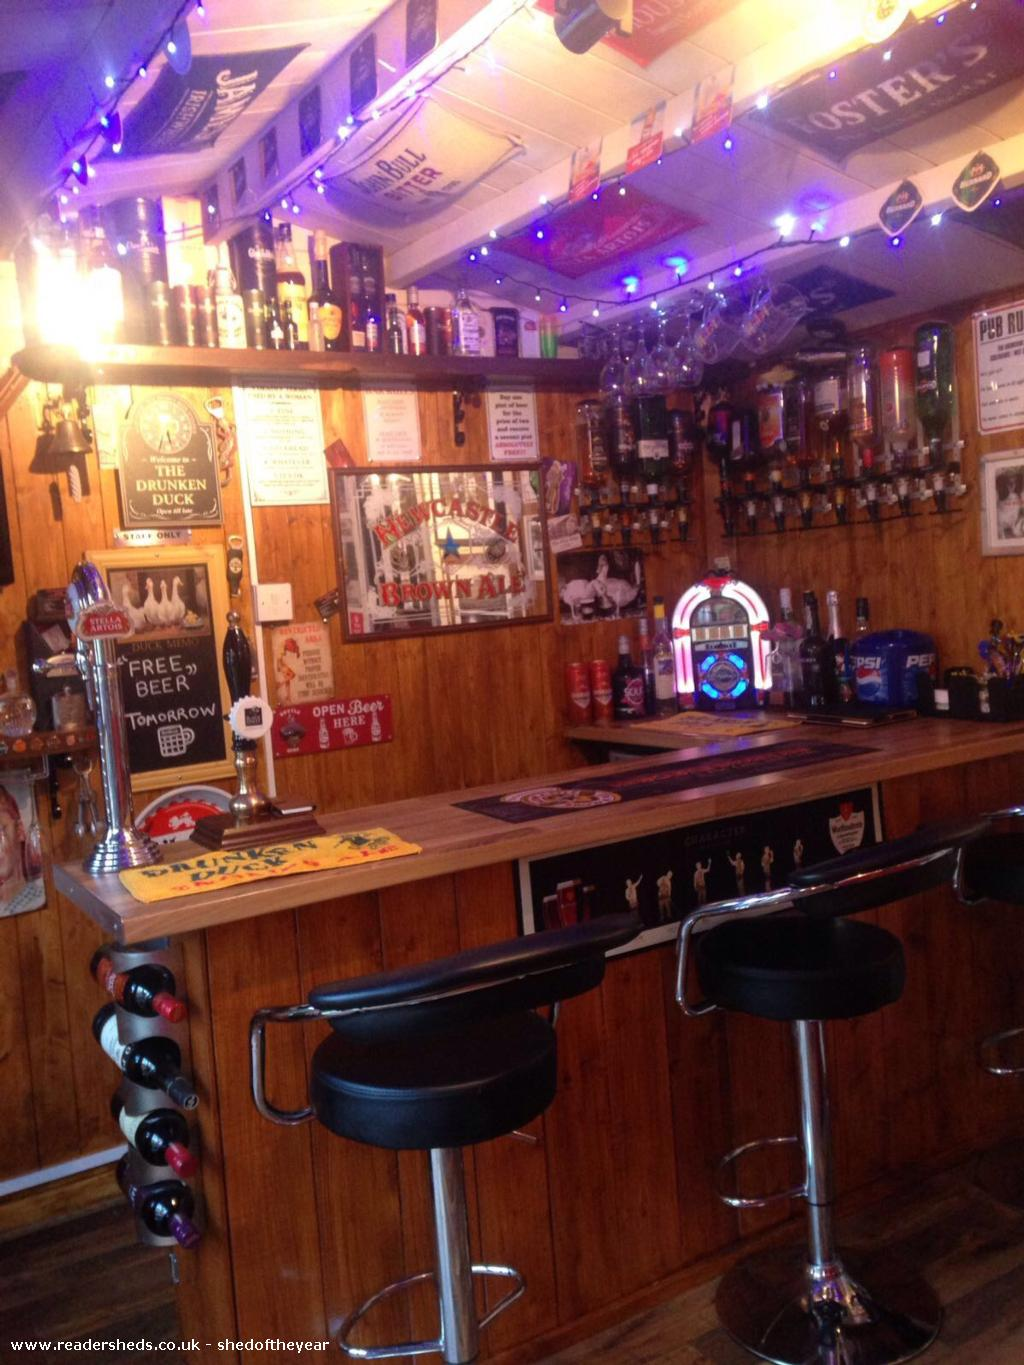 Photo of THE DRUNKEN DUCK, entry to Shed of the year-Newly Refurbished 2018